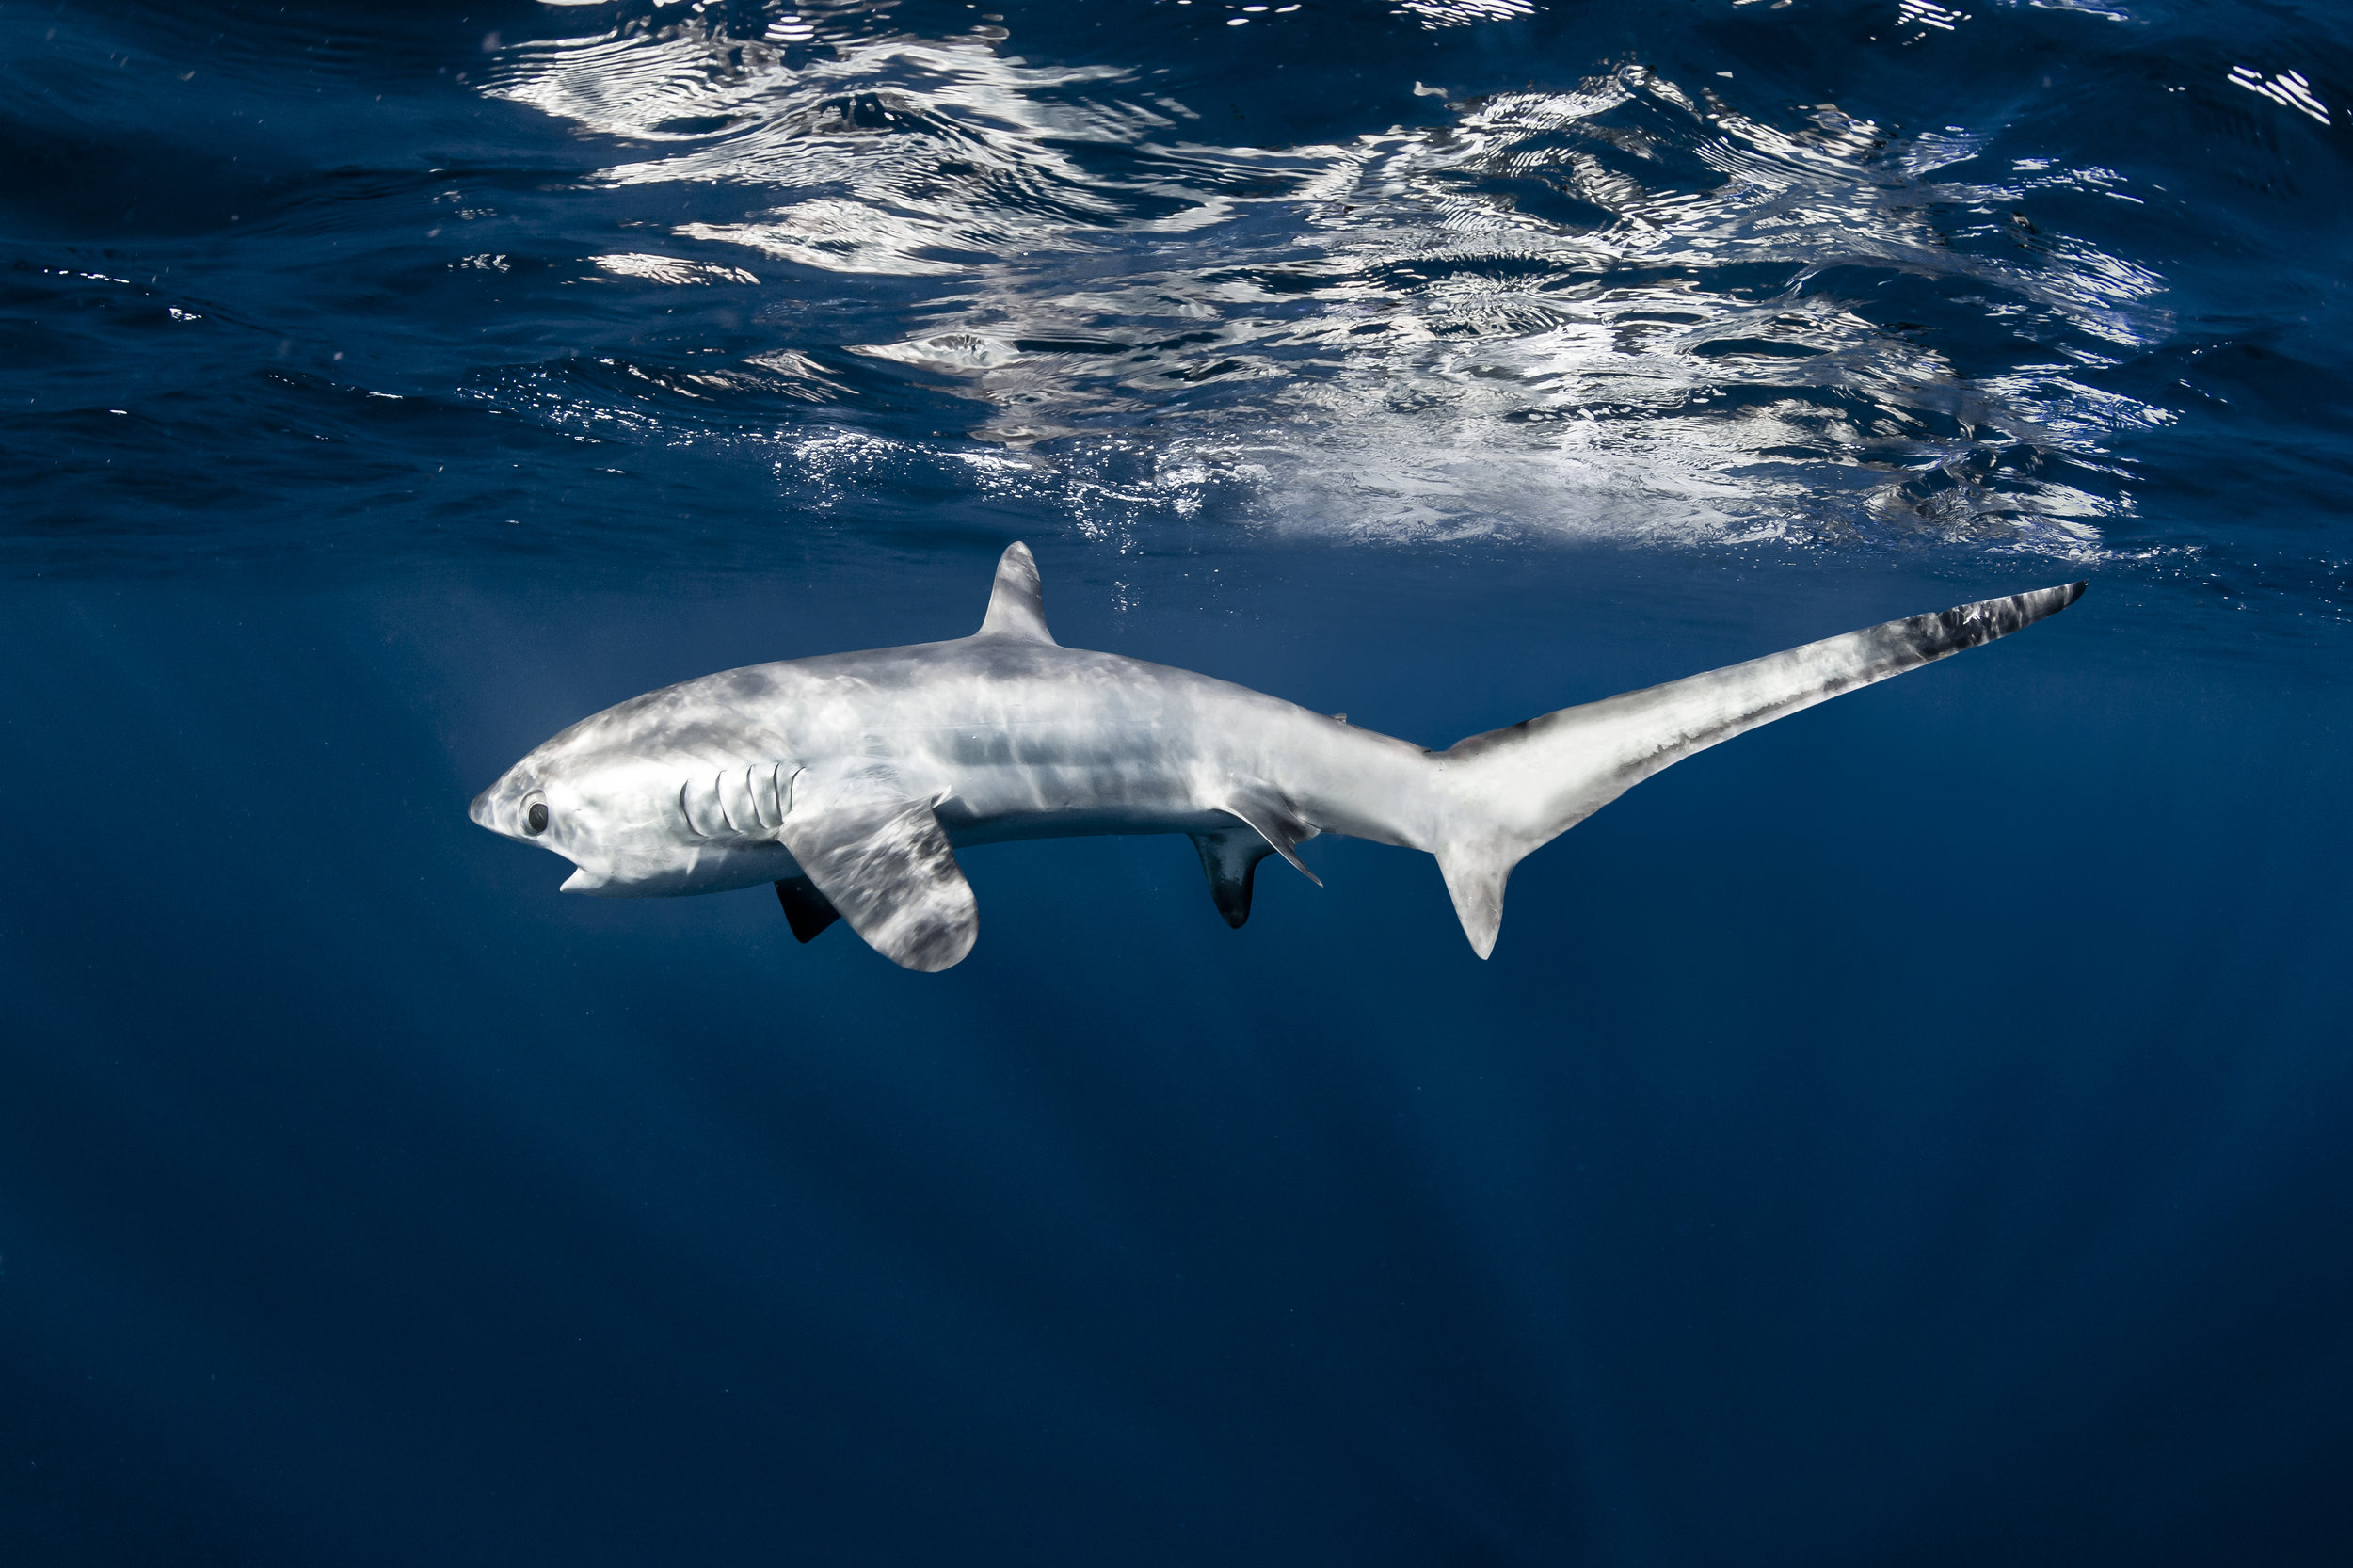 Pelagic thresher shark | Shawn Heinrichs